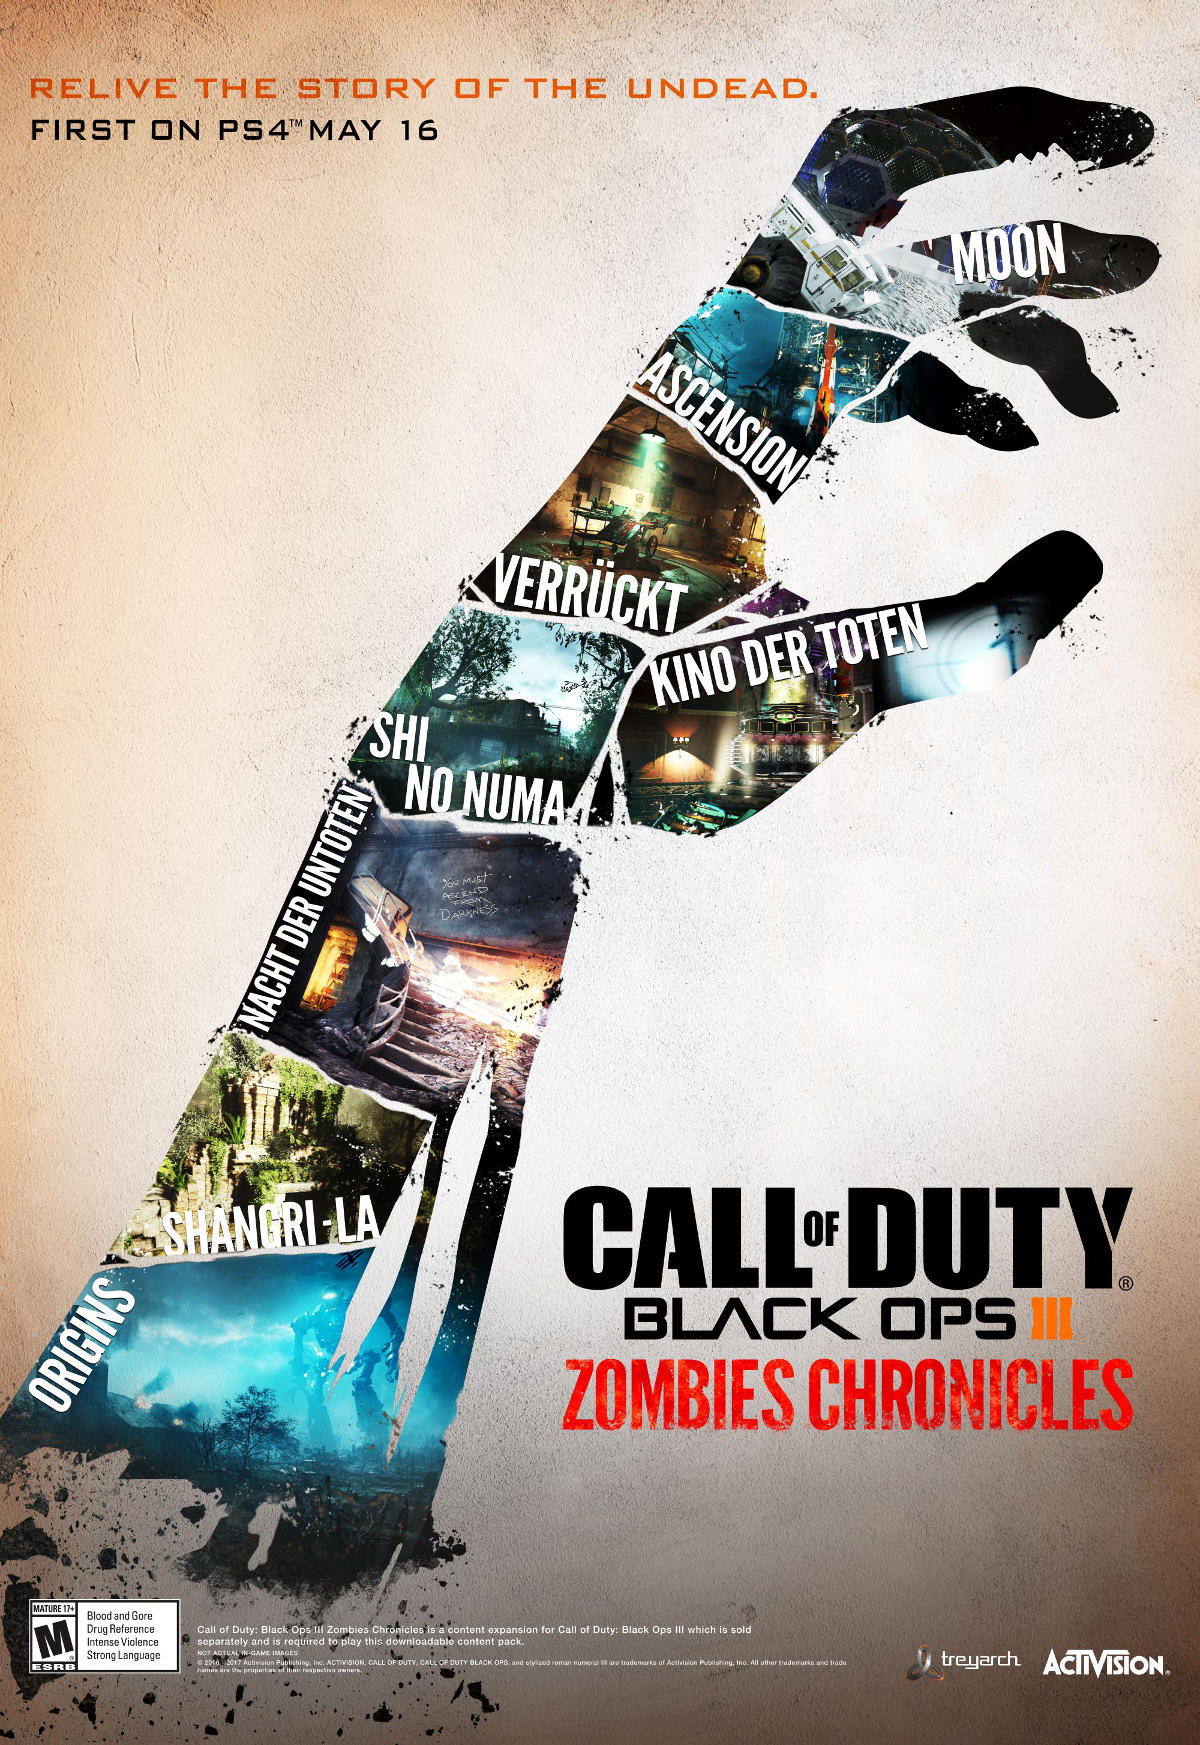 Cod Zombies Chronicles Key Art Daily Dead